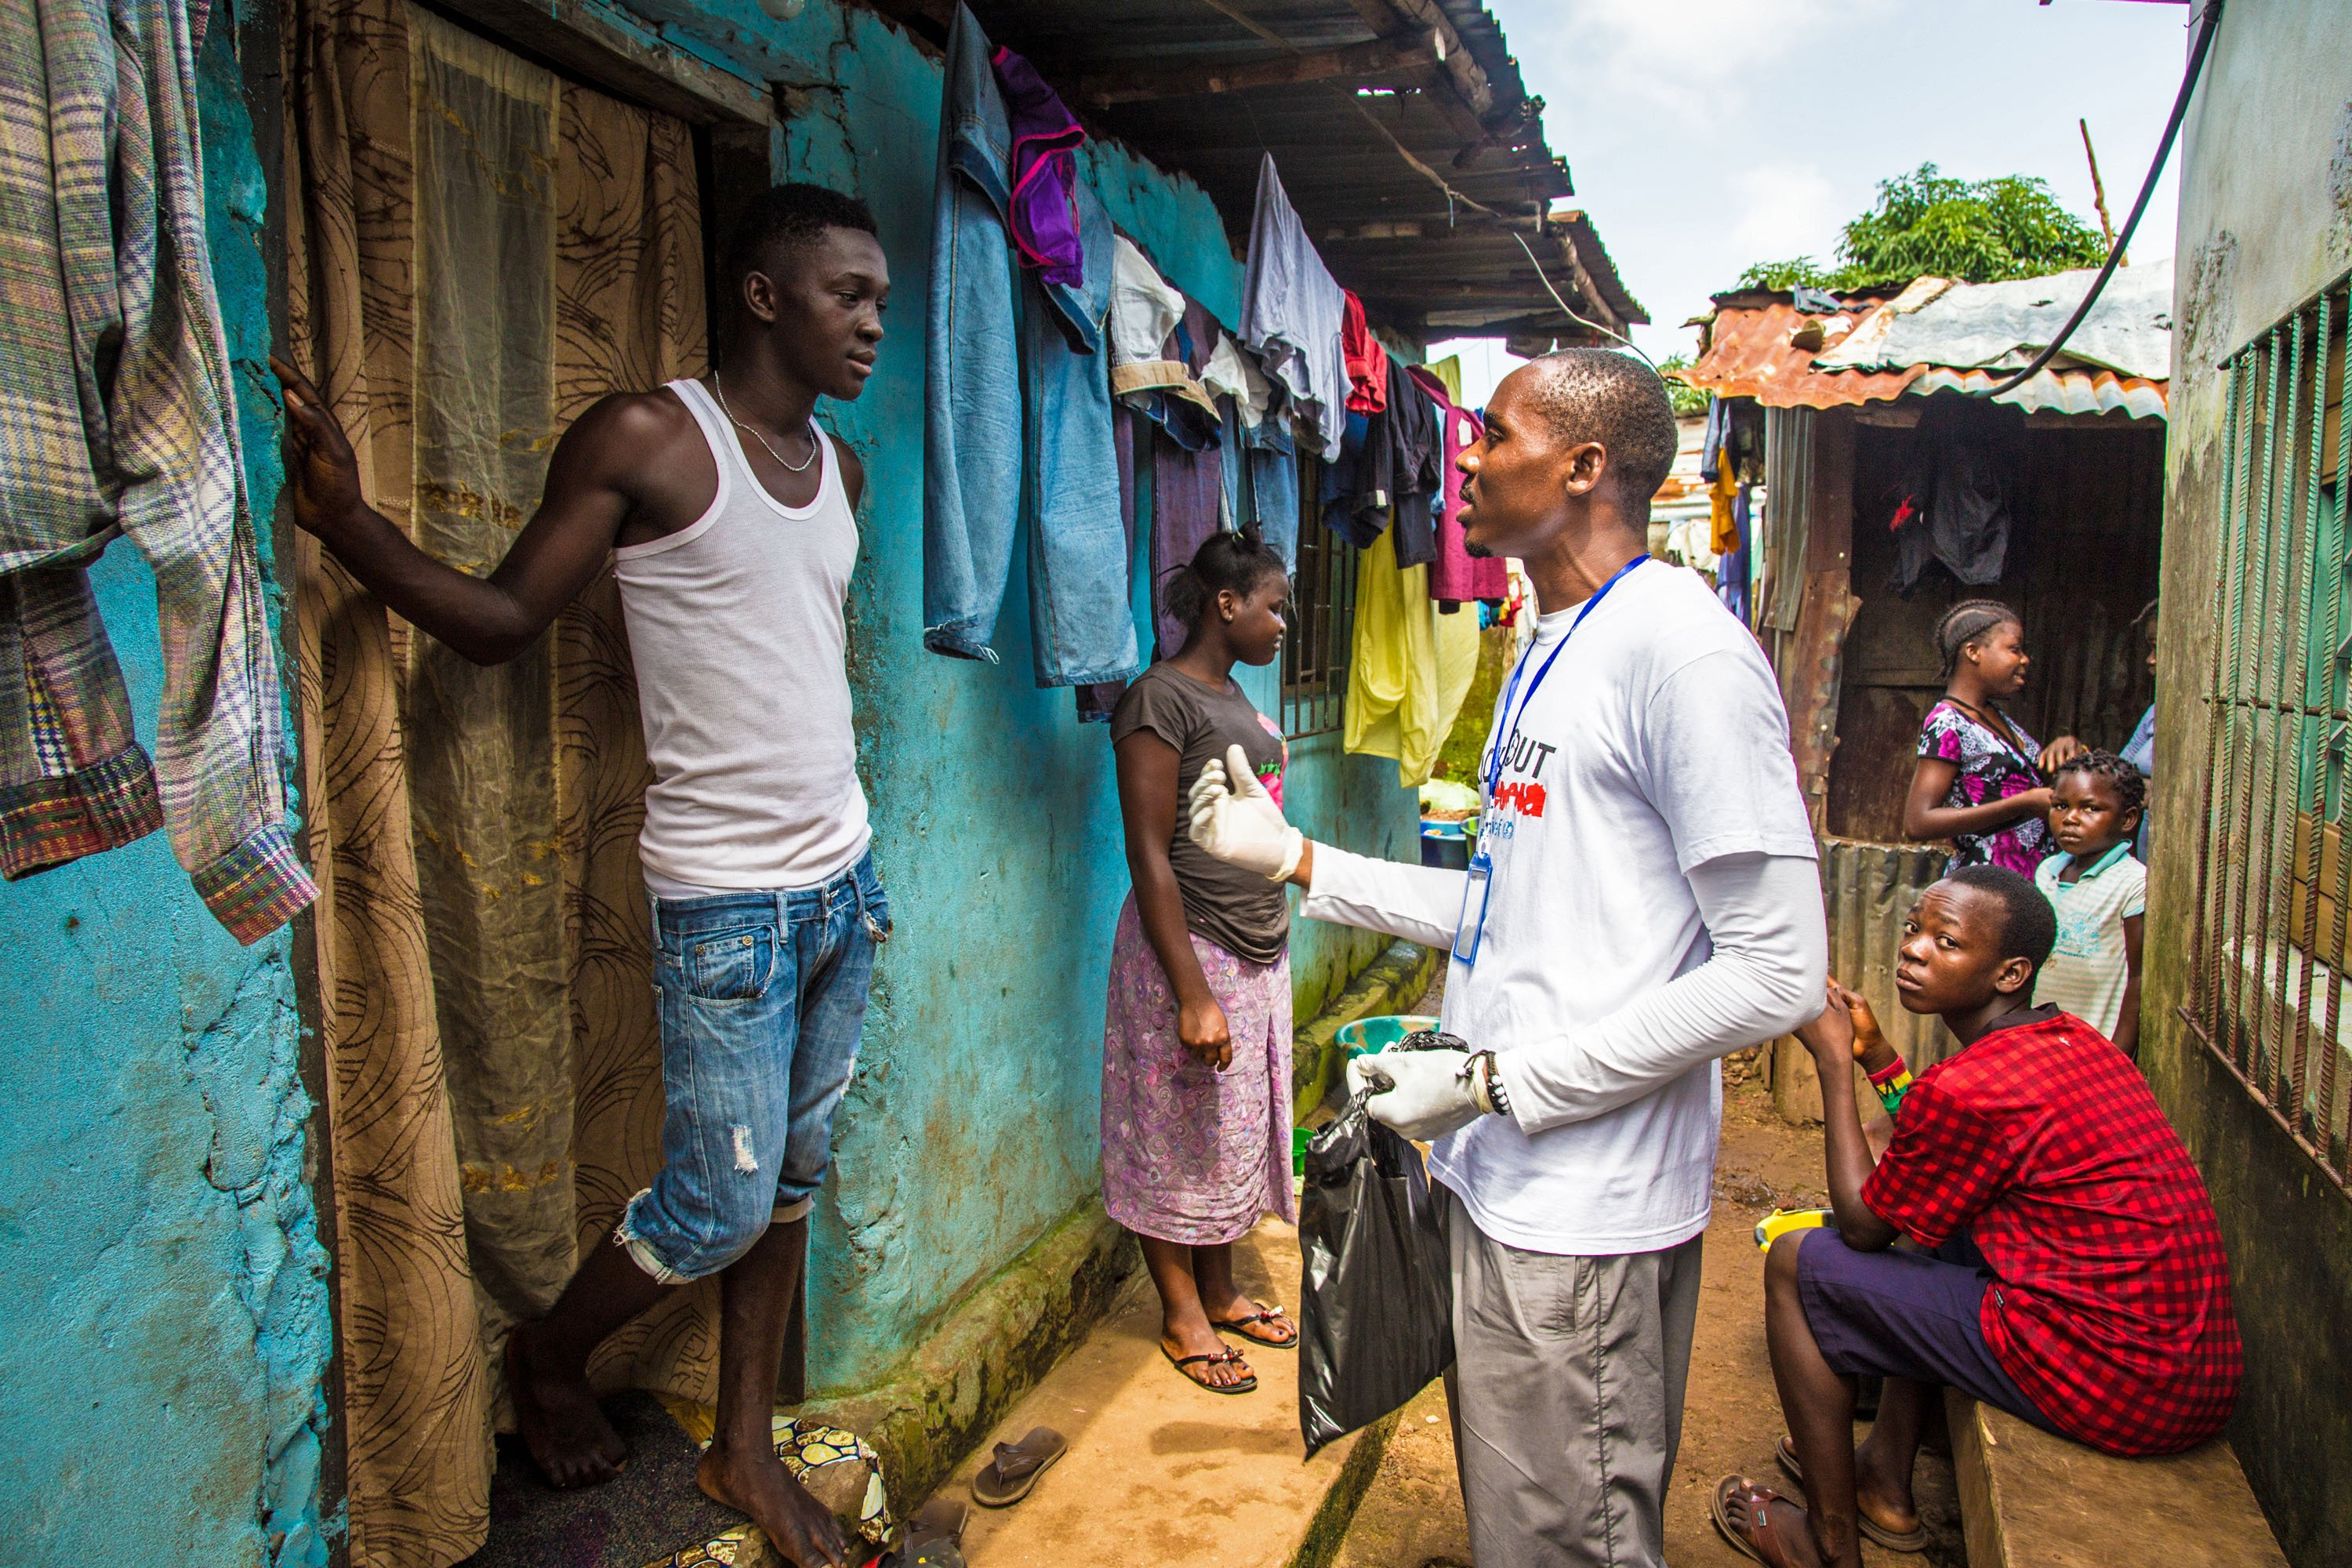 A volunteer health worker talks with a resident on how to prevent and identify the Ebola virus in others, and distributes bars of soap in Freetown, Sierra Leone, Sept. 20, 2014.